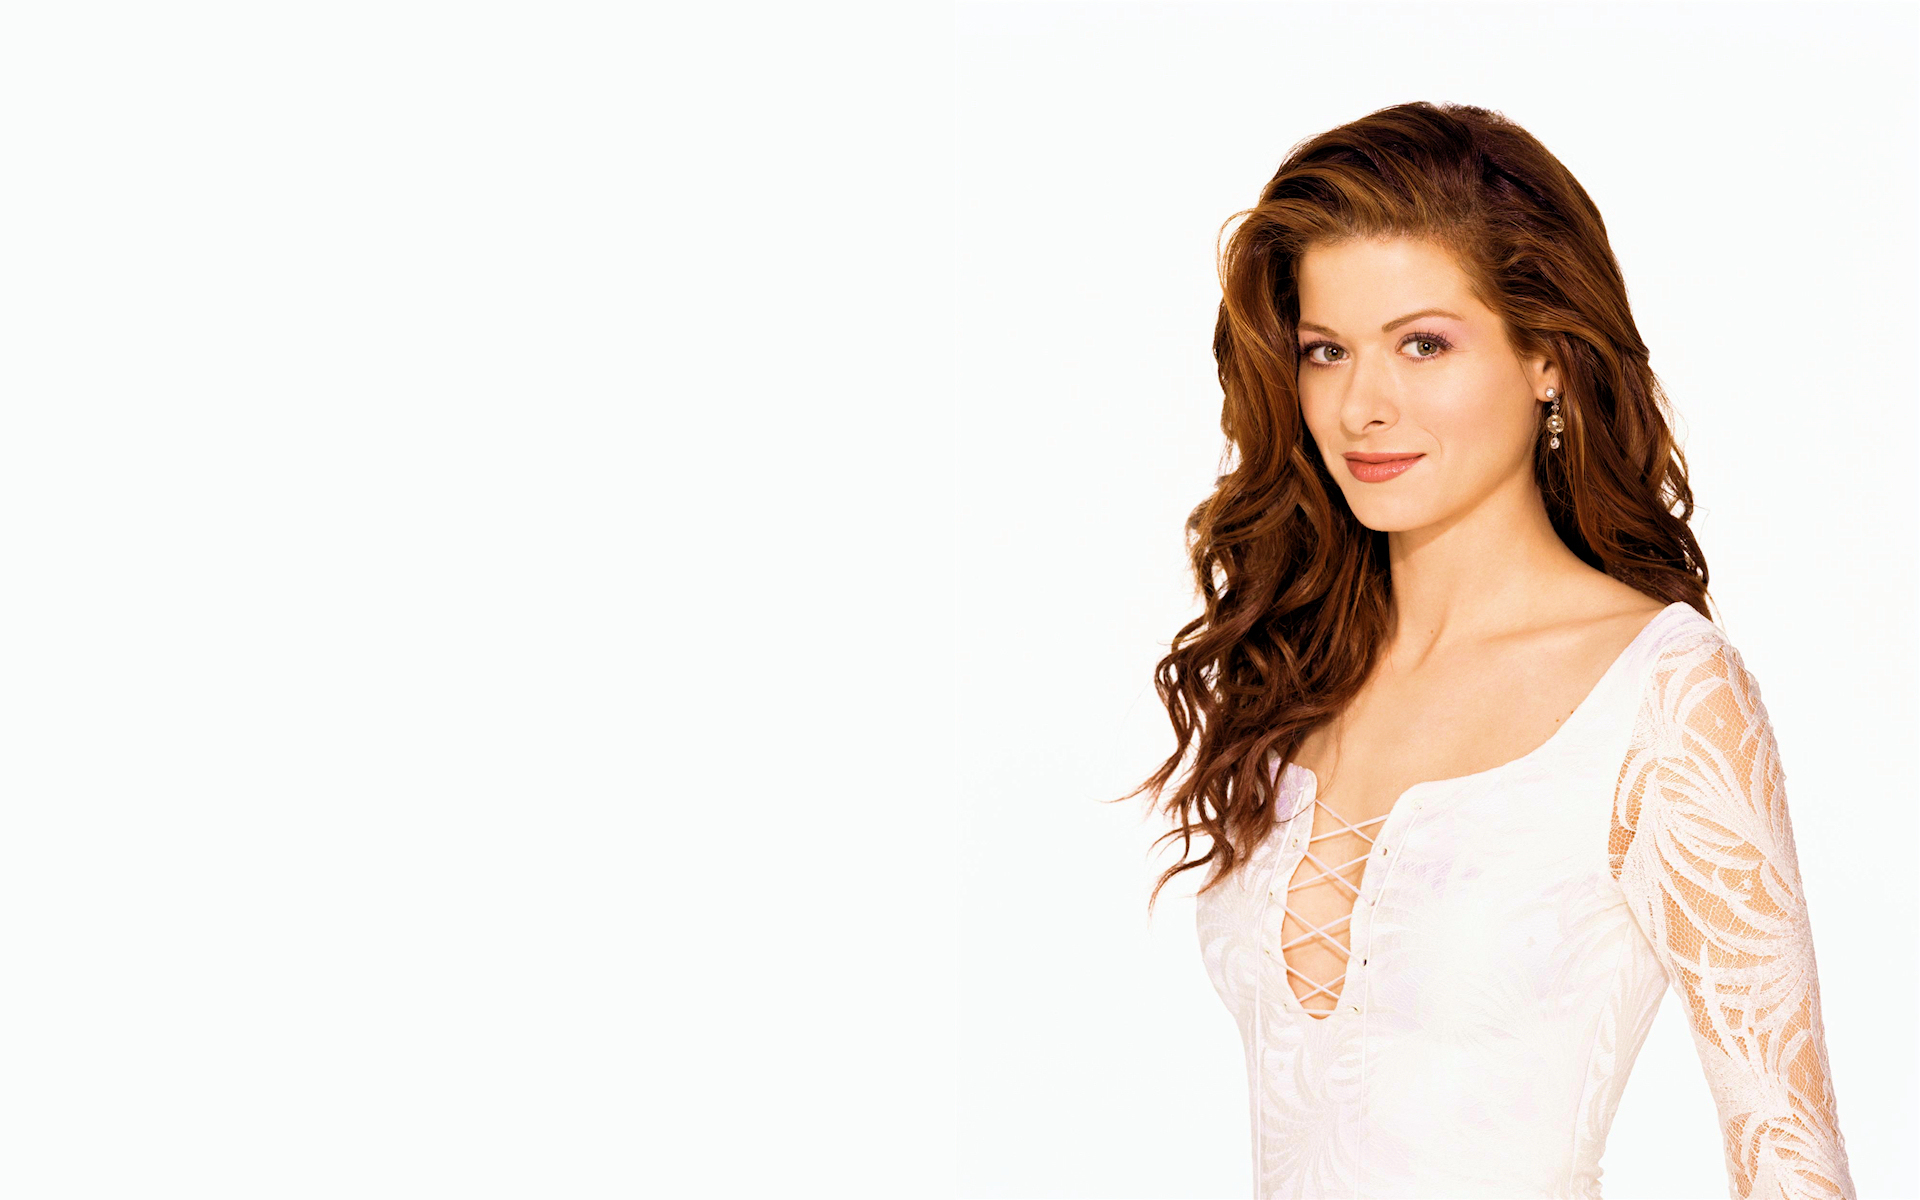 hot debra messing wallpaper 54771 1920x1200 px